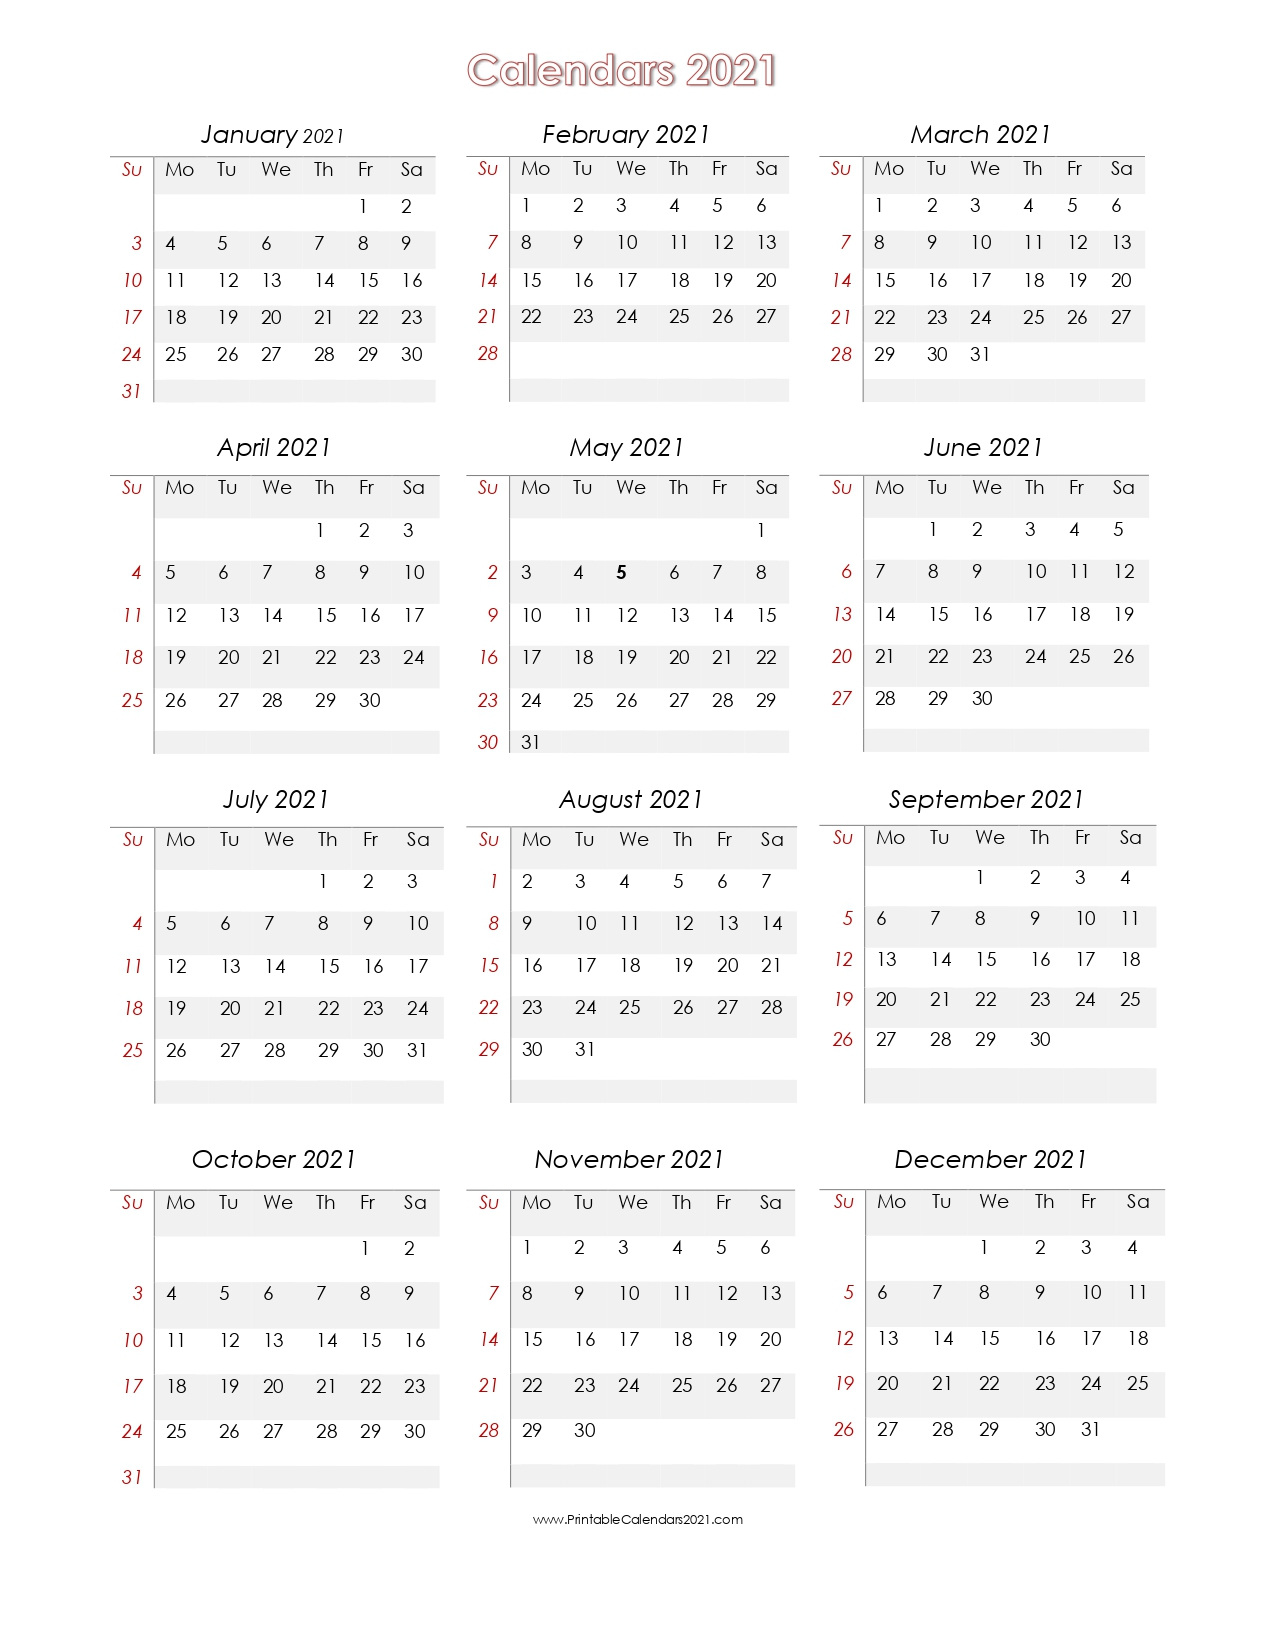 56+ Printable Calendar 2021 One Page, Us 2021 Calendar pertaining to Print Free 2021 Calendar Without Downloading